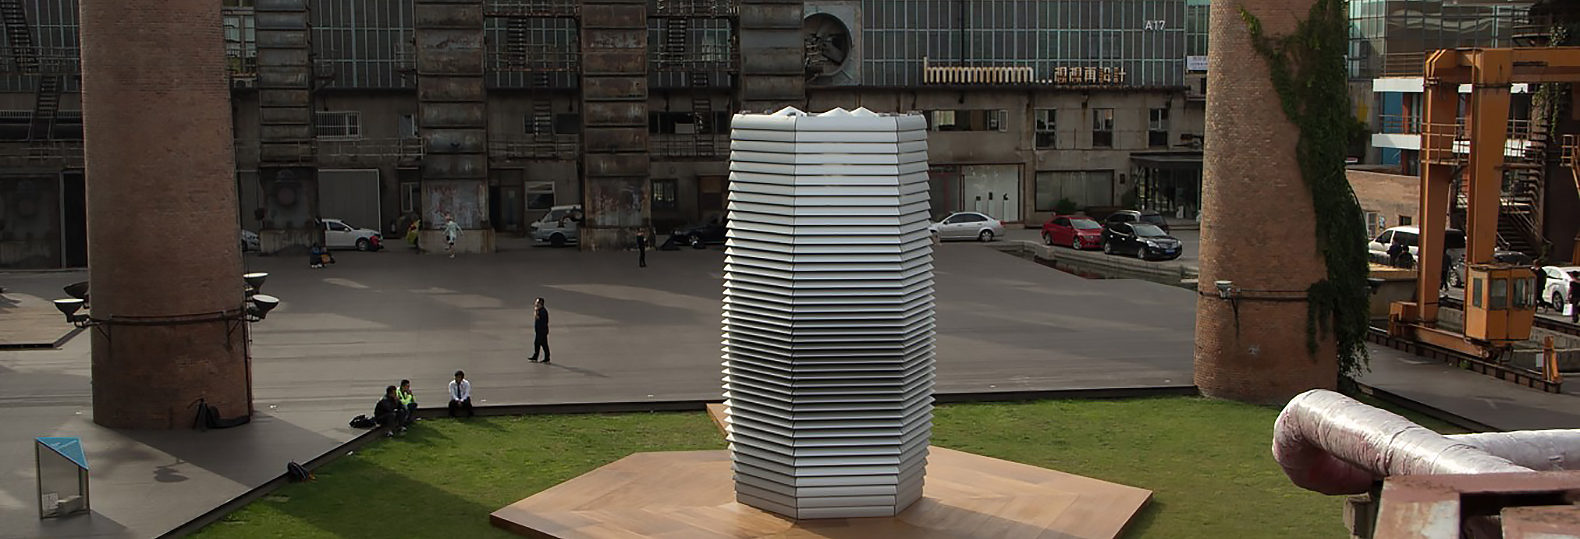 smog-free-tower-by-studio-roosegaarde-full-width-tall-1580x539